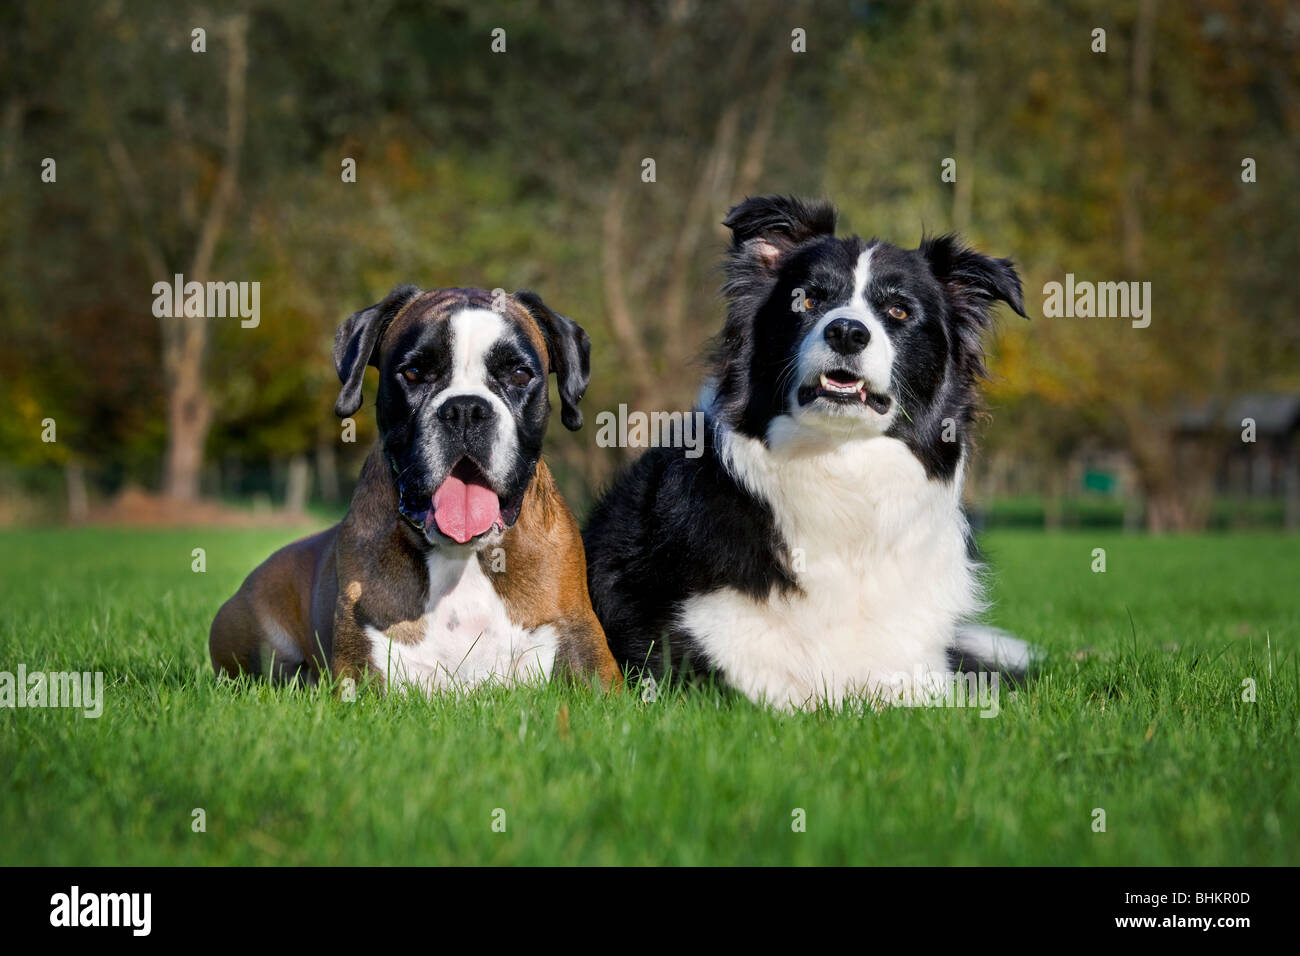 Border Collie and Boxer (Canis lupus familiaris) in garden - Stock Image